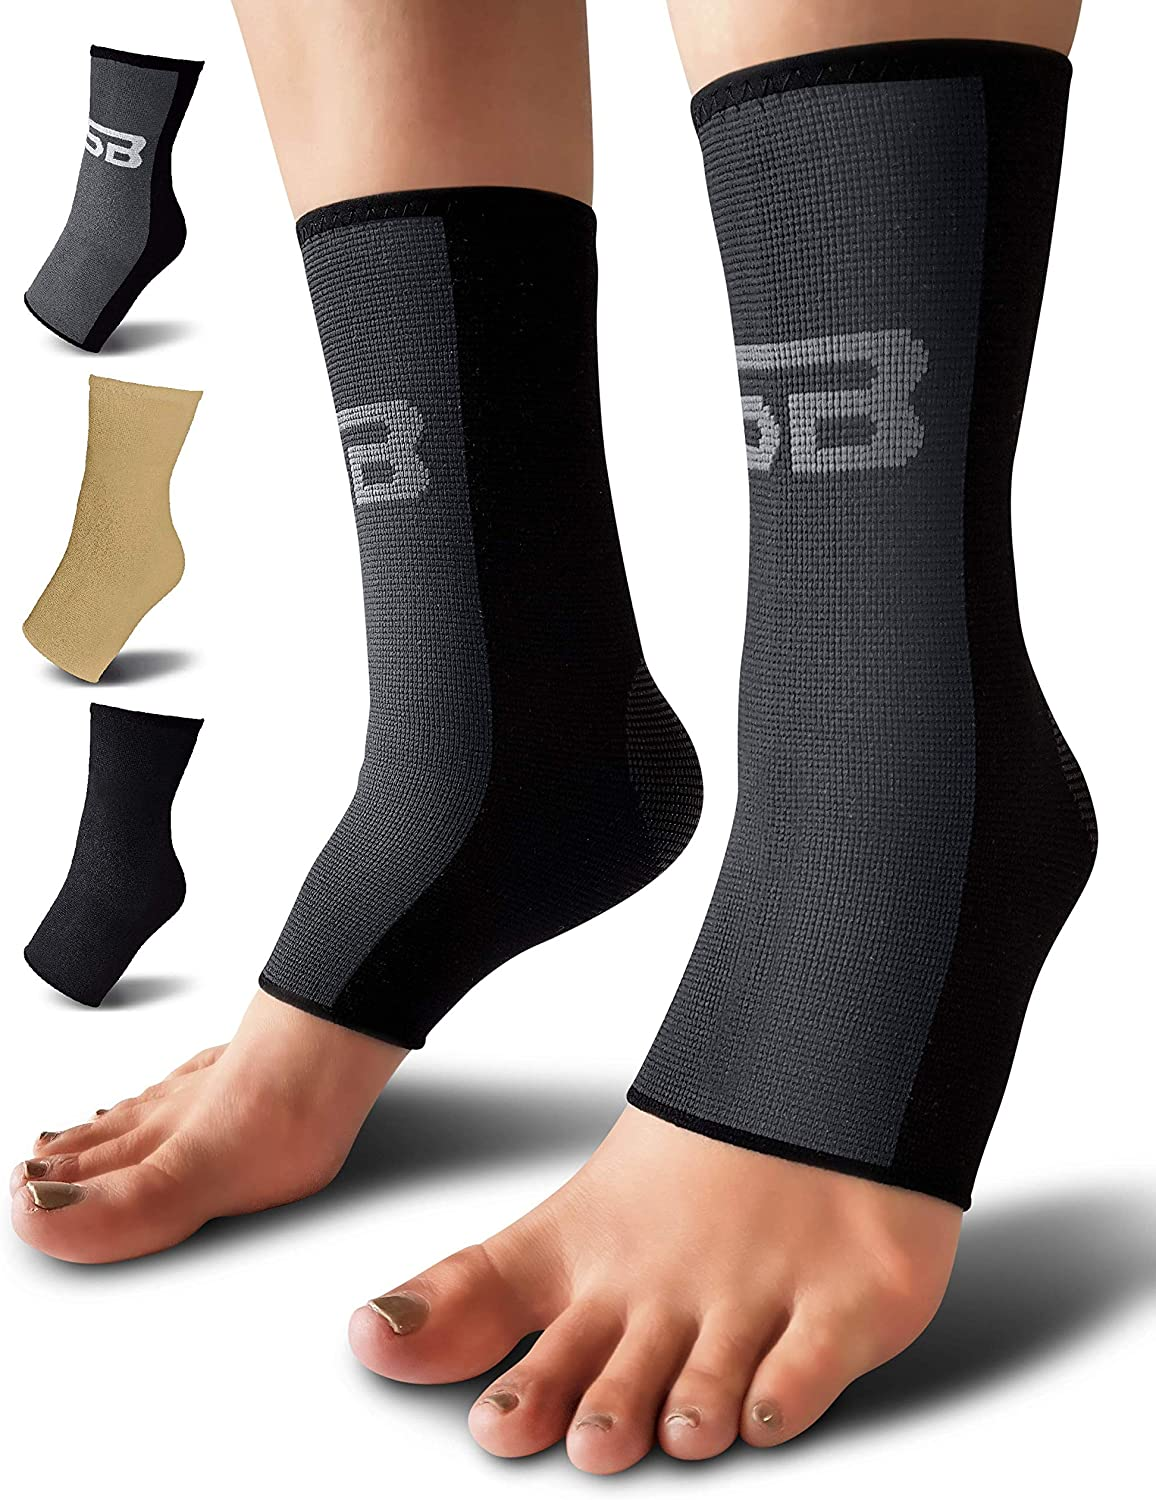 SB SOX Compression Ankle Max 60% OFF Brace Pair Ranking TOP17 – Support Great